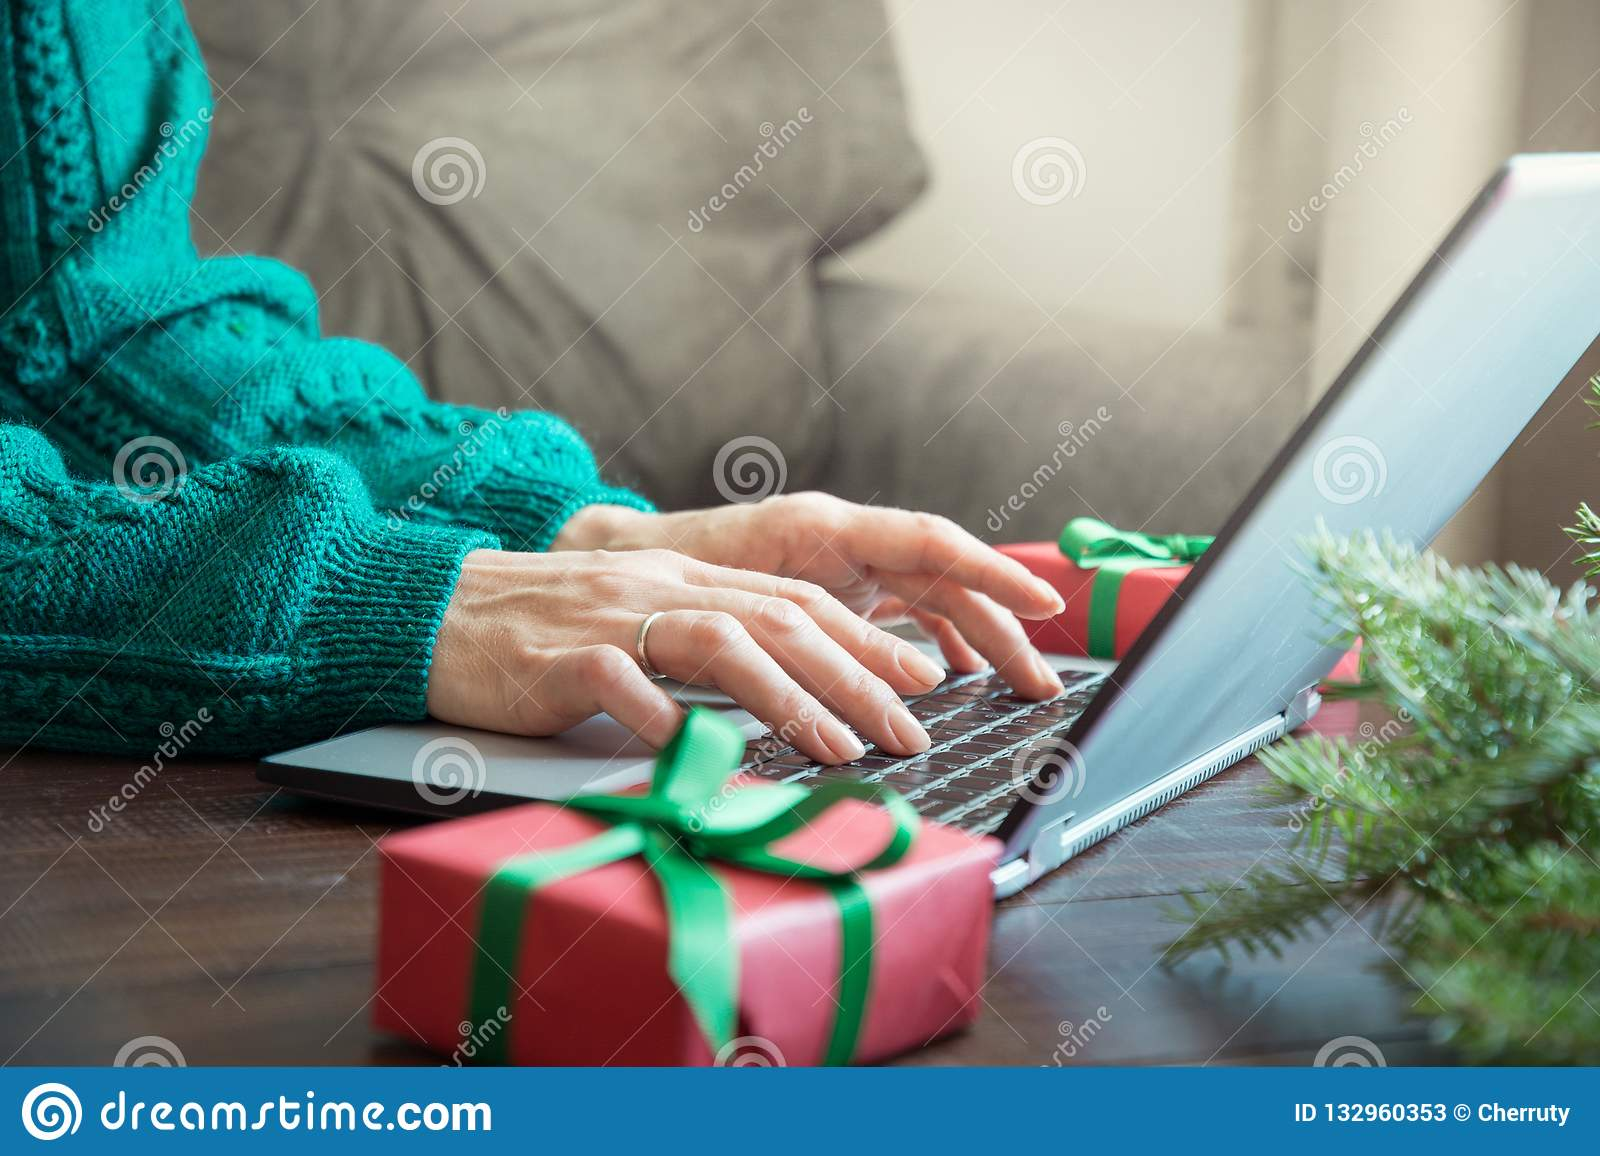 Christmas sales. Woman typing on laptop in home interior. Xmas concept. Planing holidays